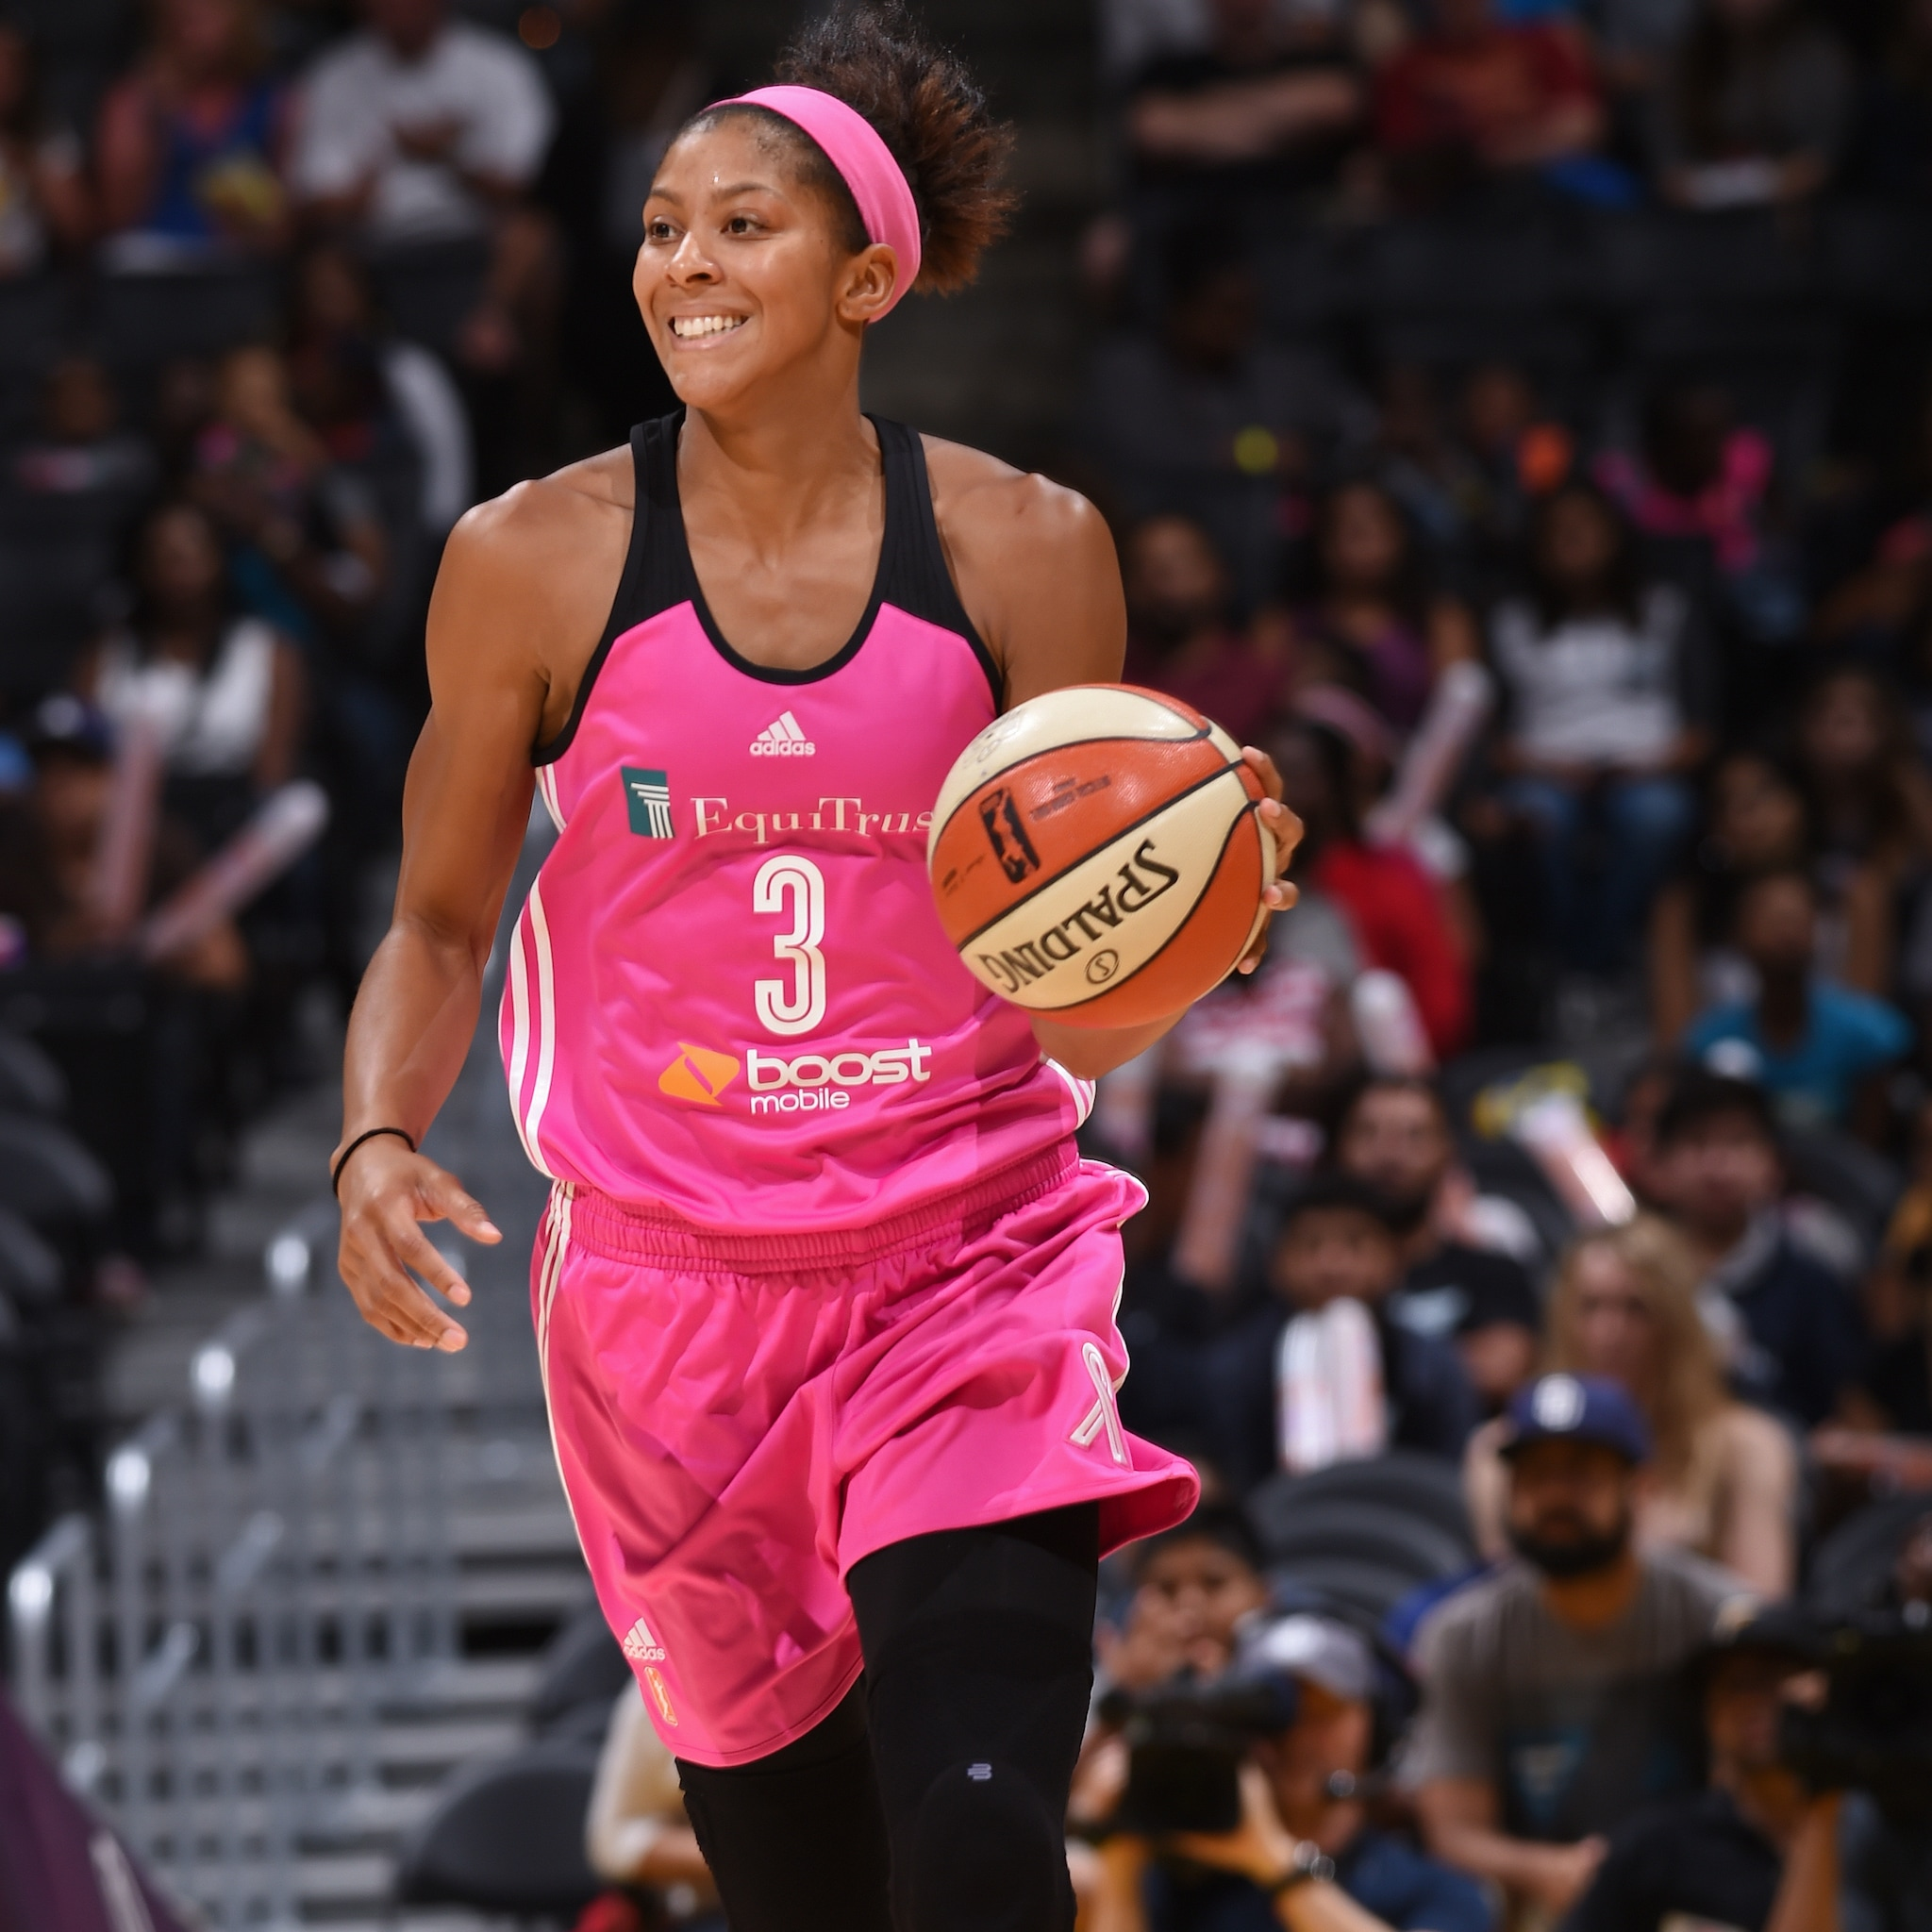 Forward Candace Parker was absolutely dominant at home that night, leading all scorers with 18 points while adding  13 rebounds, five assists, four steals and two blocked shots.